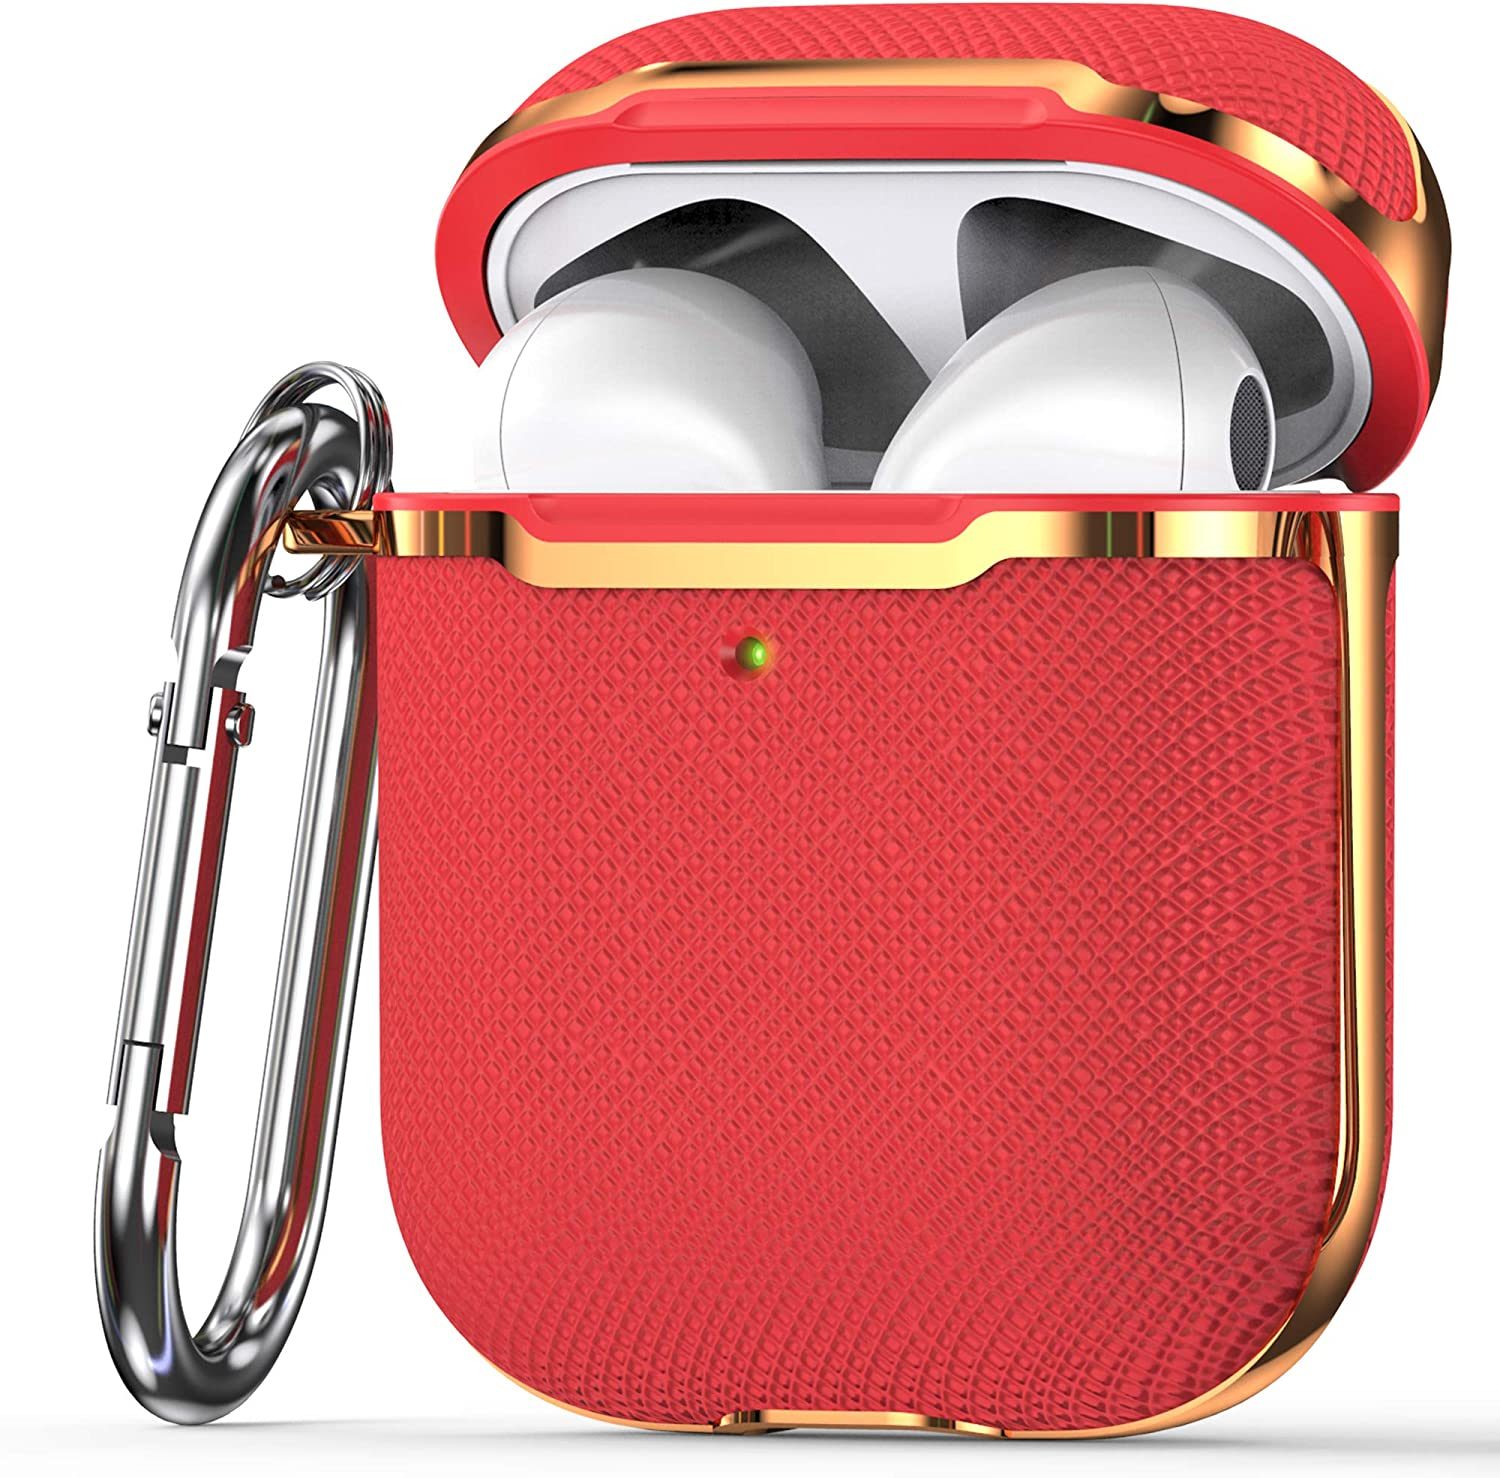 KIQ Premium Protection Case Cover Anti-Scratch Full-Body Slim and Lightweight for Airpod Charging Case Compatible with Apple Airpod 1st & 2nd Generation (Red/Gold)